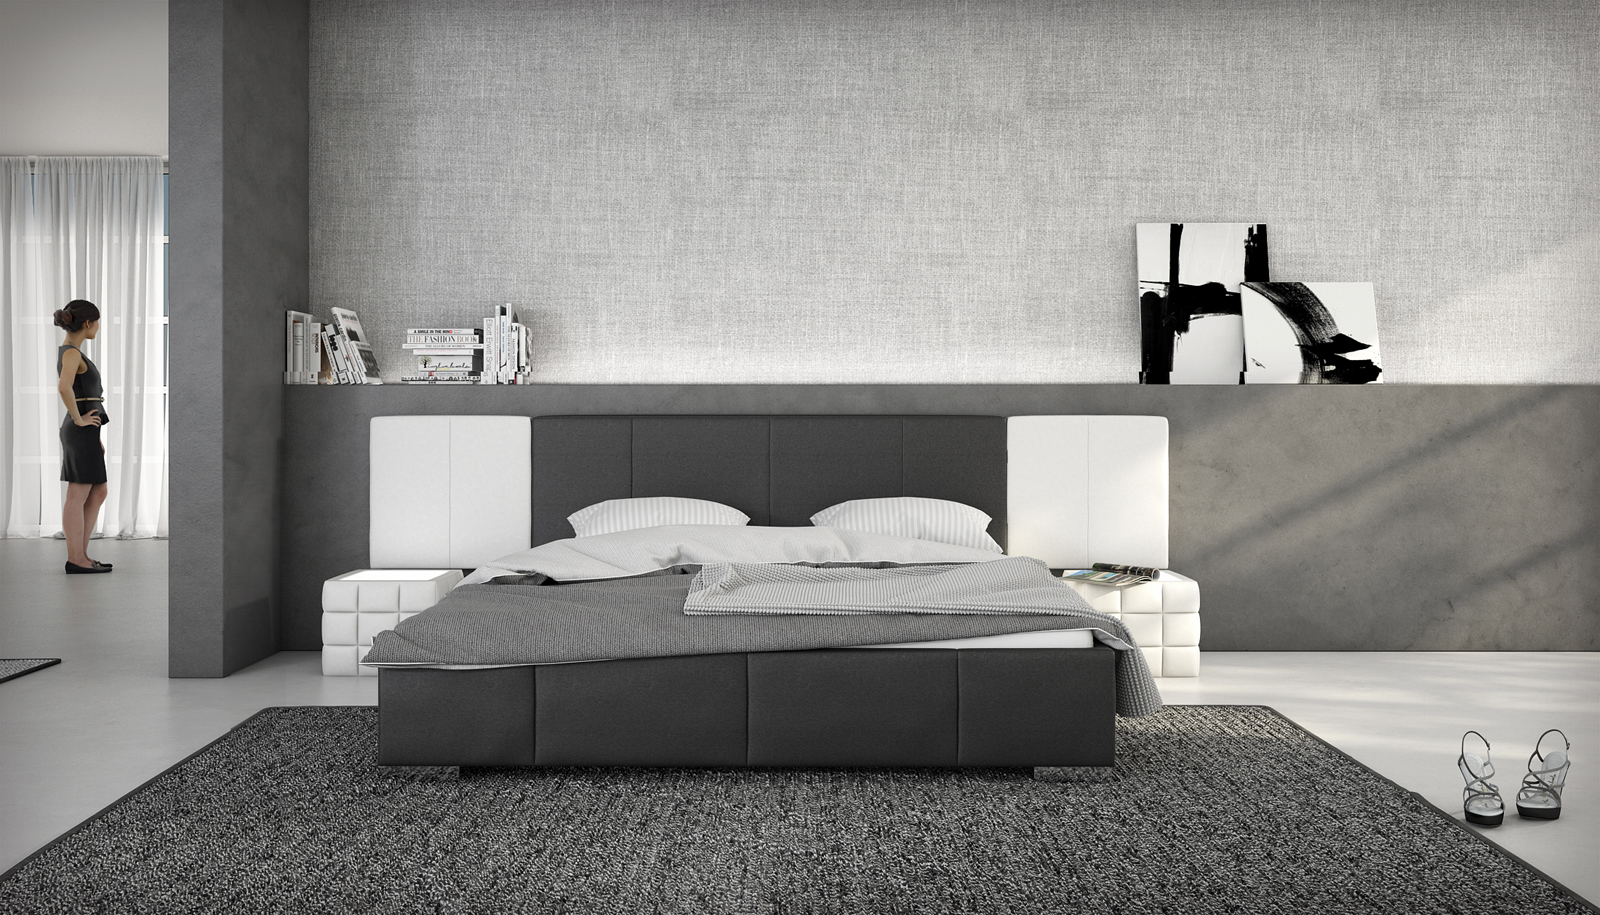 sam polsterbett doppelbett 140x200 cm schwarz wei nemo. Black Bedroom Furniture Sets. Home Design Ideas